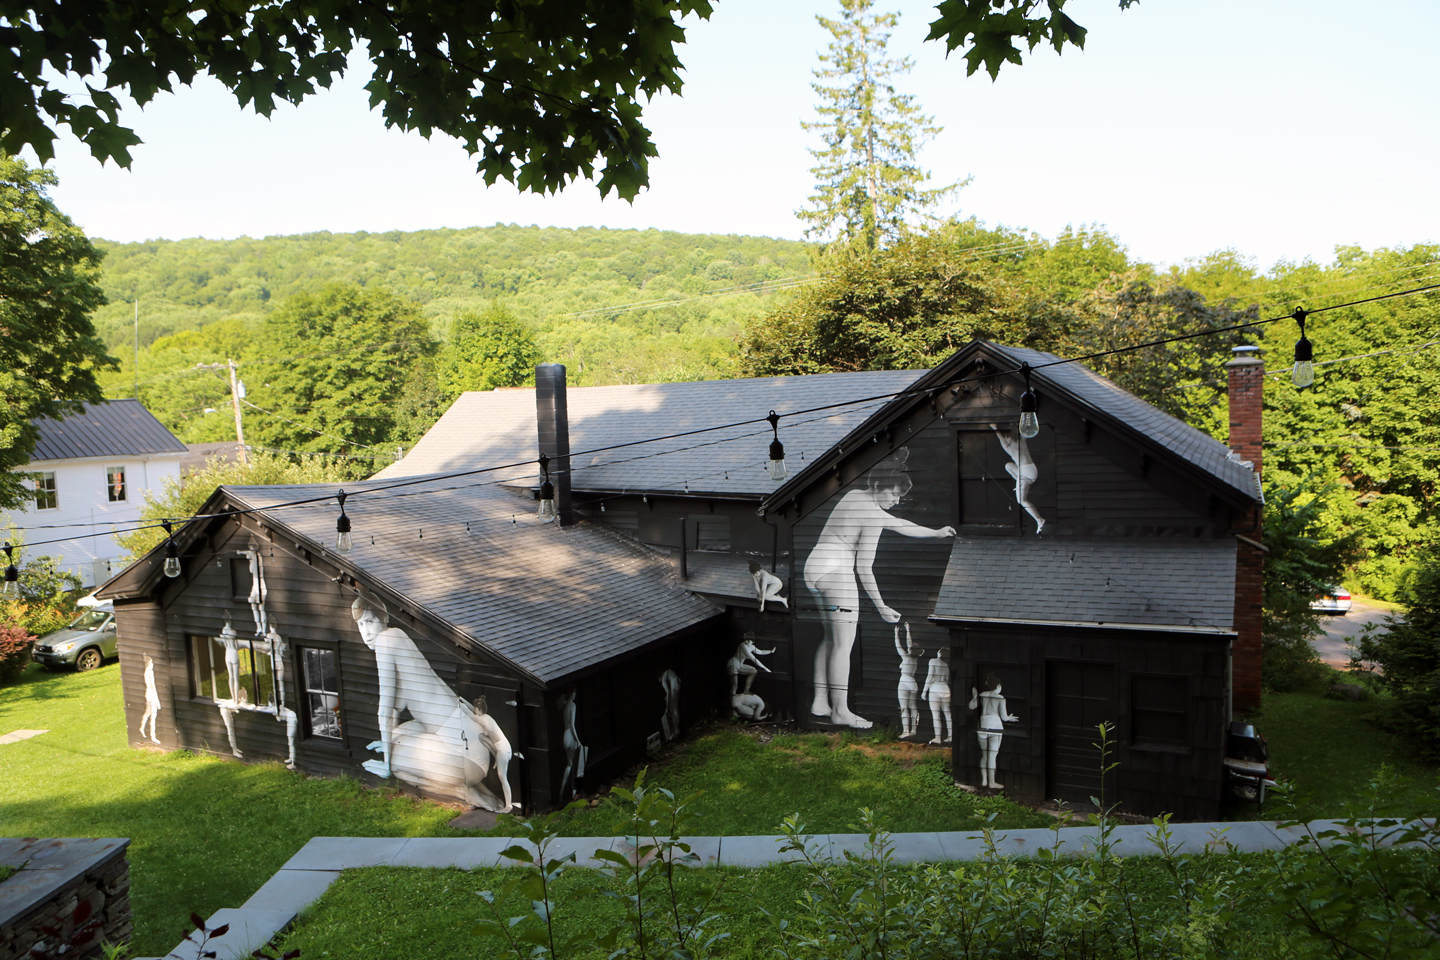 A photograph of a wood panelled house, painted black and nestled amongst a valley of green trees. Black and white xeroxed photos are pasted on the house, some as large as the house, others human-sized. They depict a woman in their underwear in various poses.